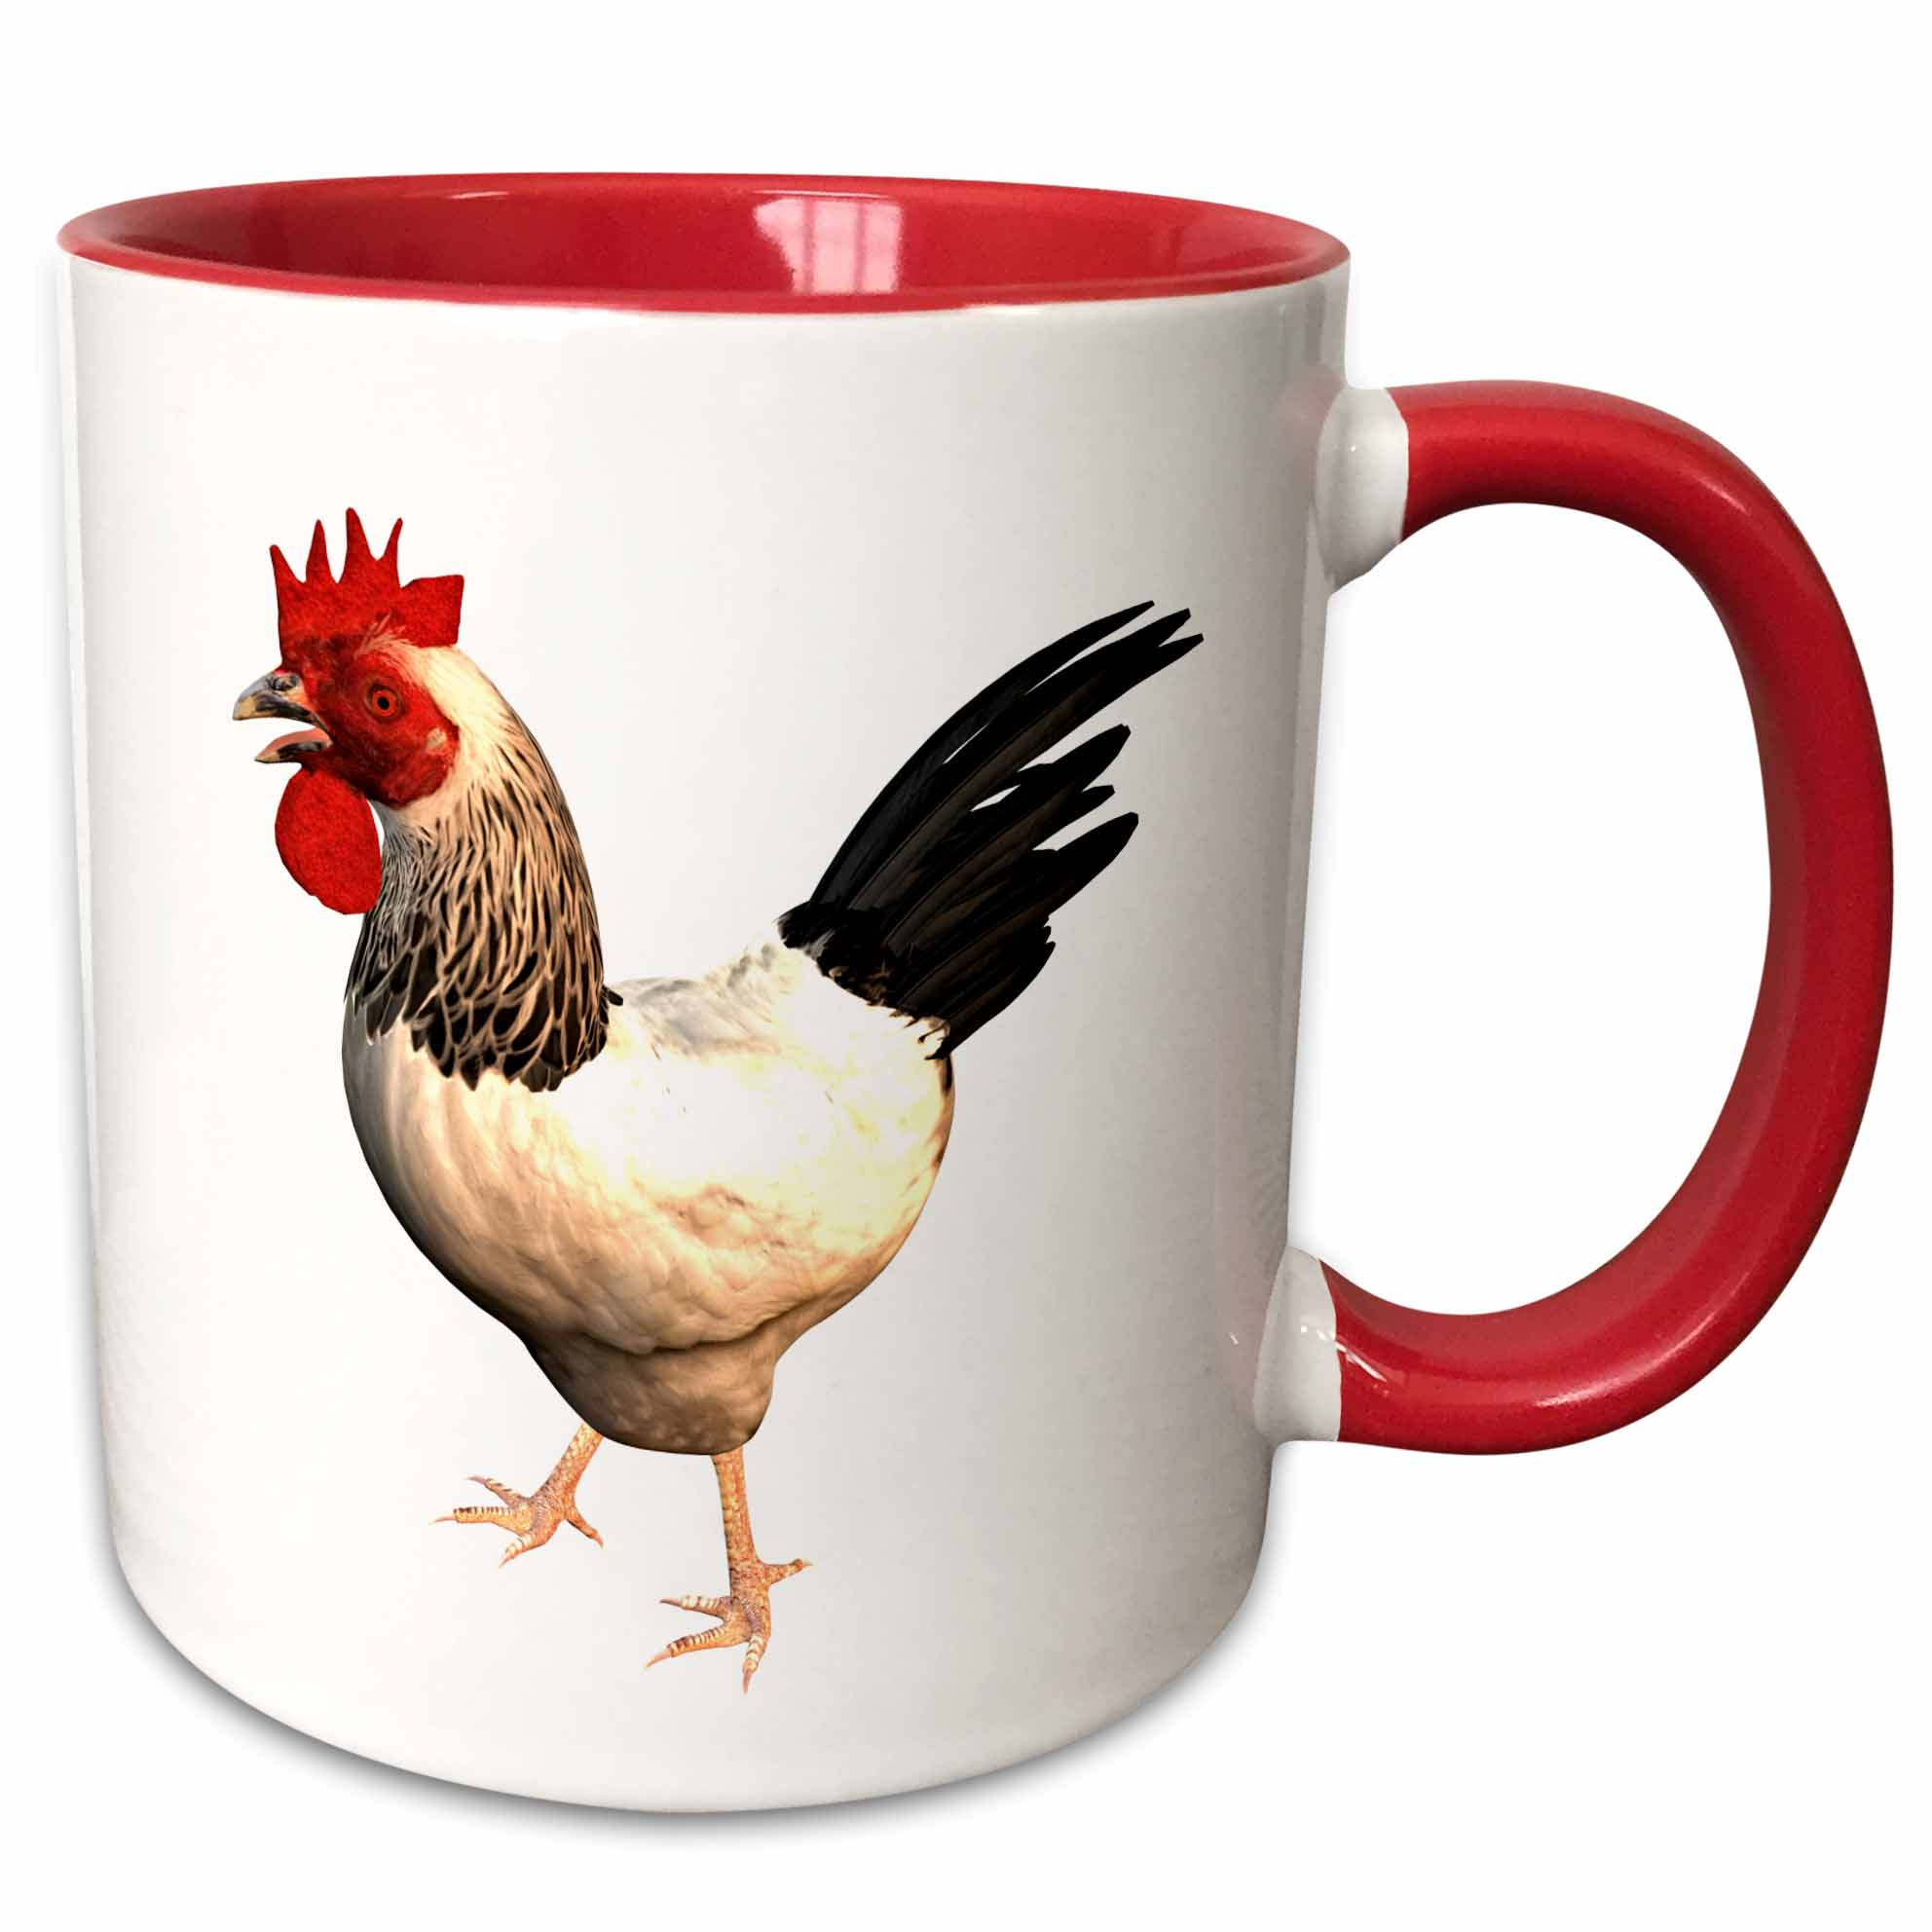 3dRose Sussex Rooster - Two Tone Red Mug, 11-ounce